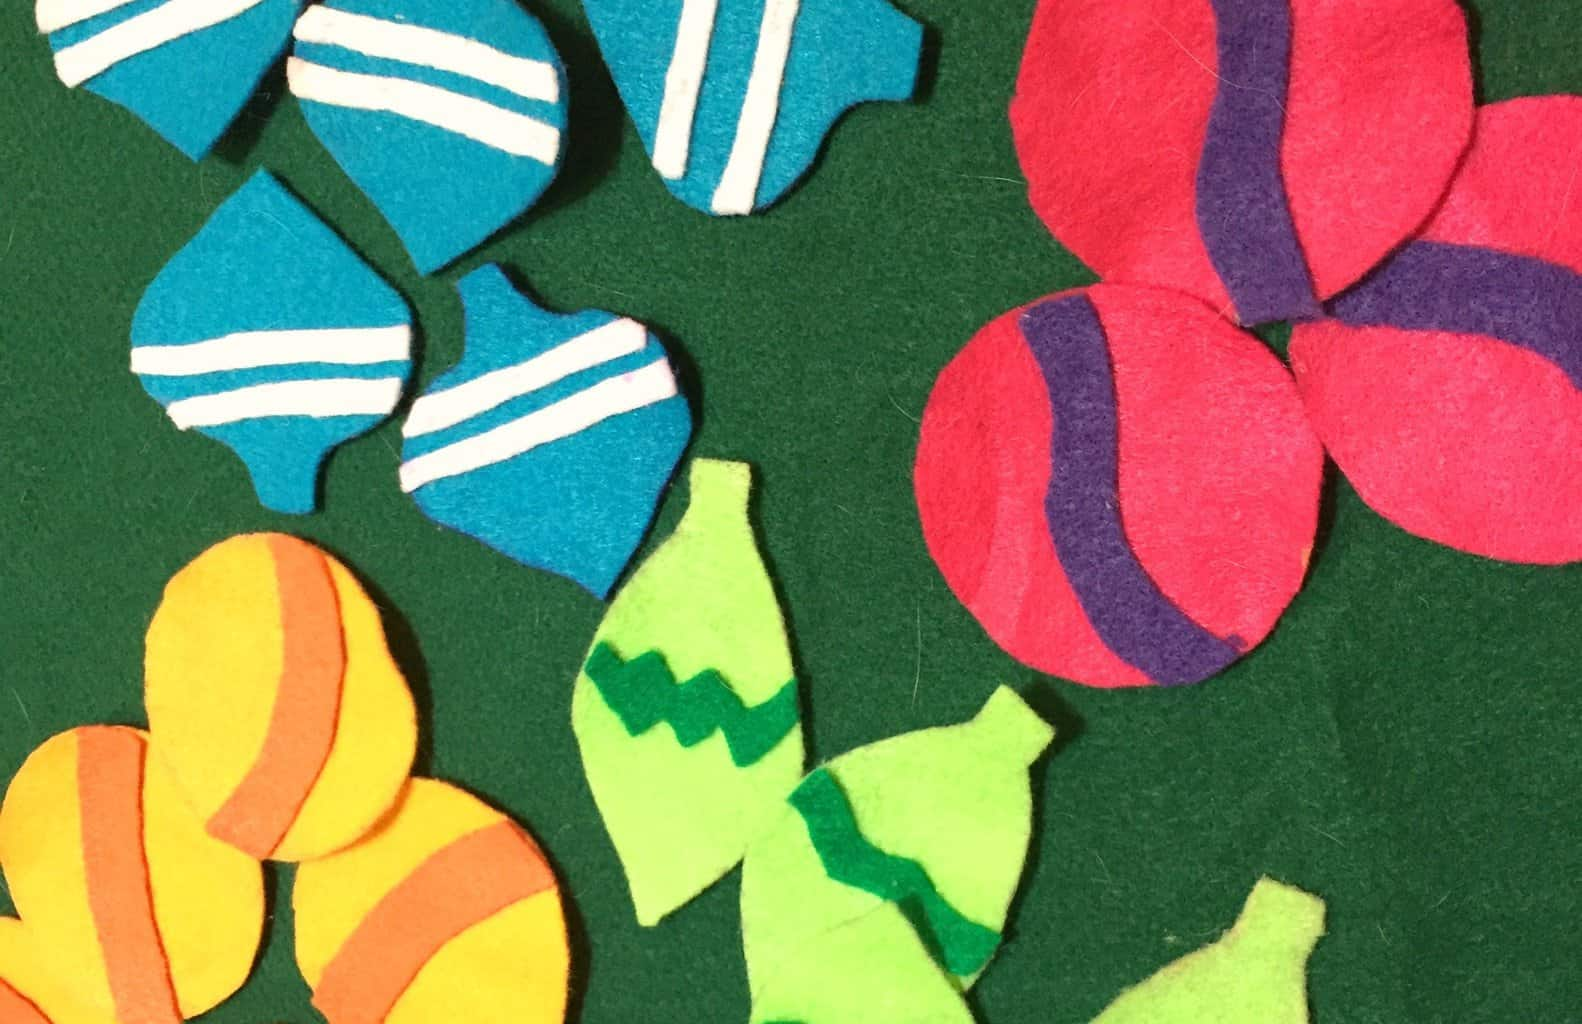 So, you made one of those DIY felt Christmas trees for kids, right? Discover three simple and engaging Christmas preschool activities you can do with your felt tree! Early learning should be hands-on and fun, mama! Jump into the Christmas spirit with these toddler and preschooler activities you can do all month long!